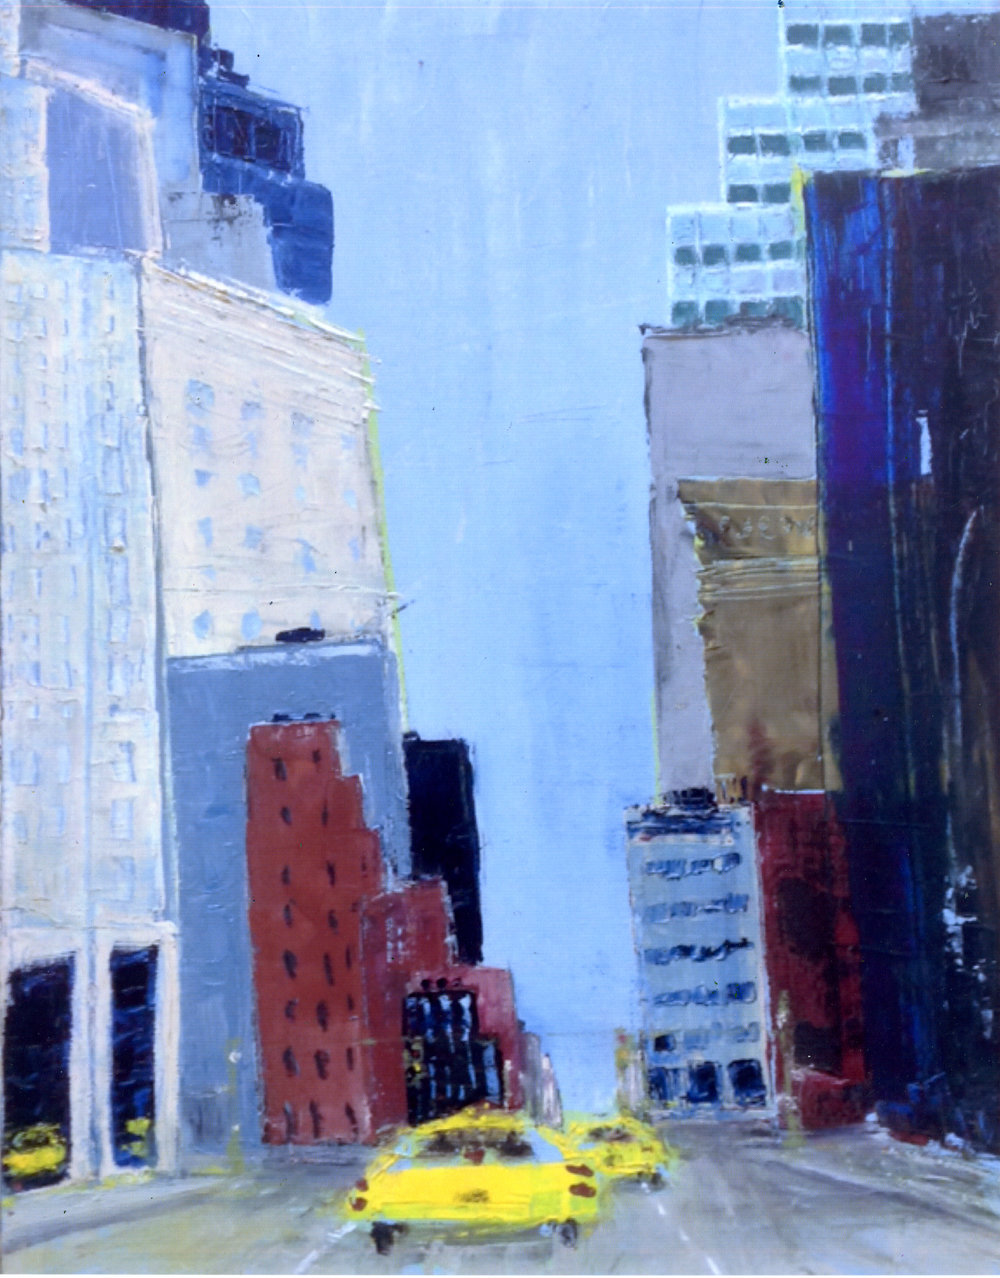 """Yellow Cabs on the Street   Oil on stretched canvas  24"""" x 18"""" x 3/4""""  $885  Click to Enlarge Image   Inquire."""